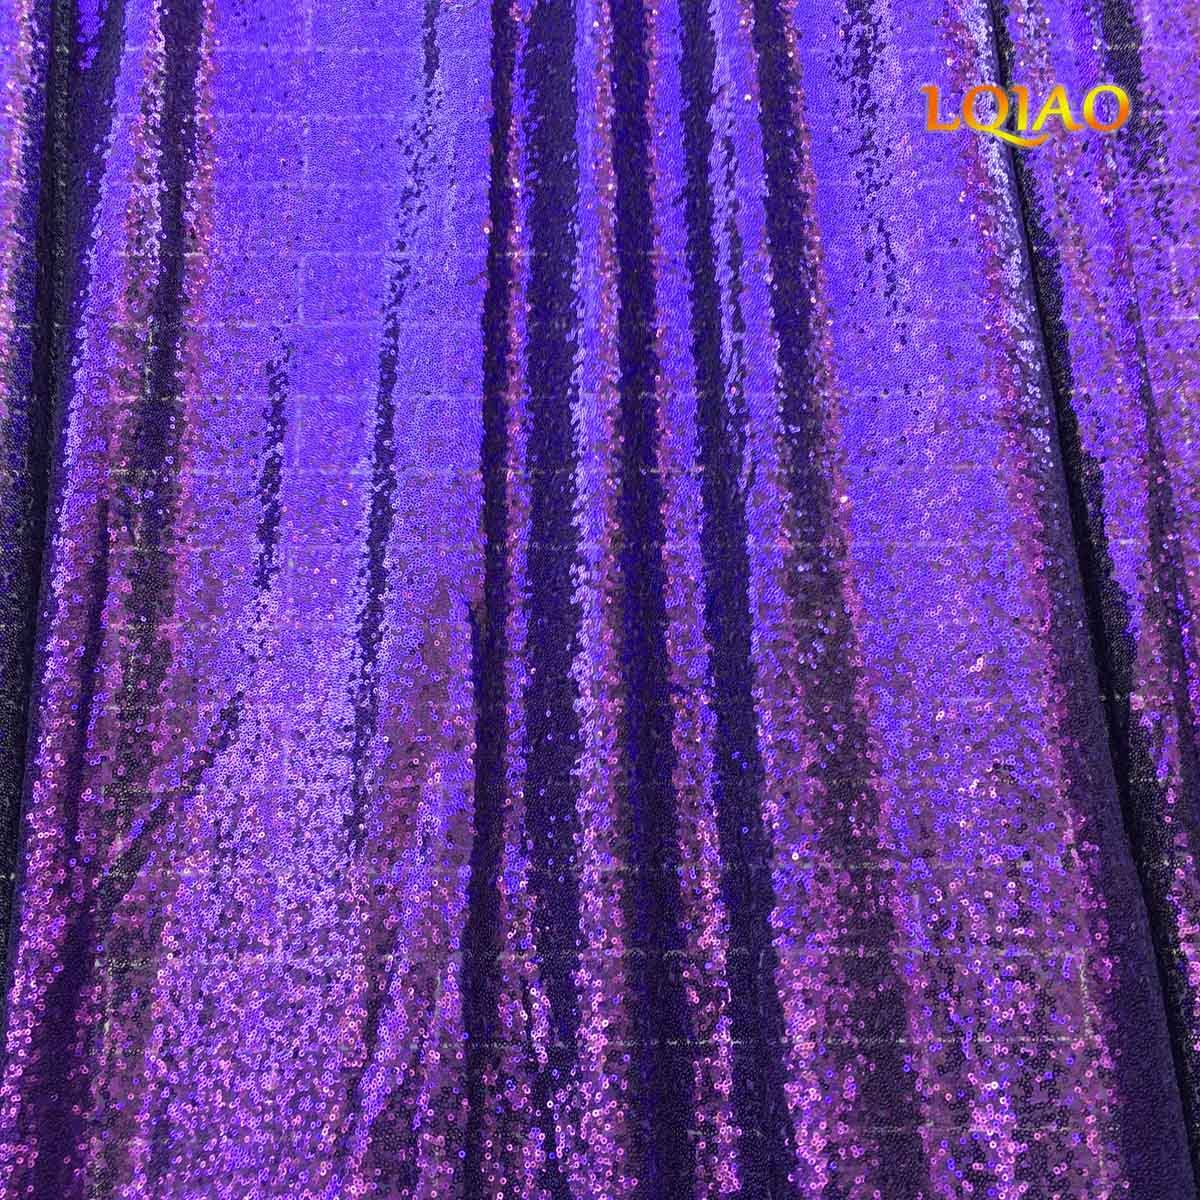 LQIAO 20x10ft-Sequin Backdrop Purple Sequin Curtain Photography Booth Backdrop for Wedding/Party Decoration(600x300cm)